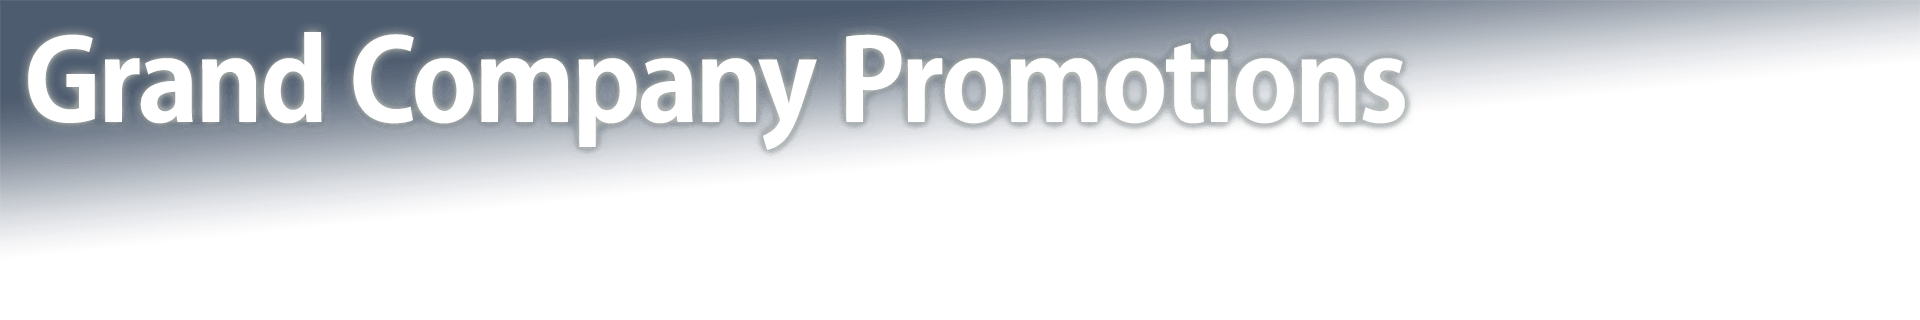 Grand Company Promotions